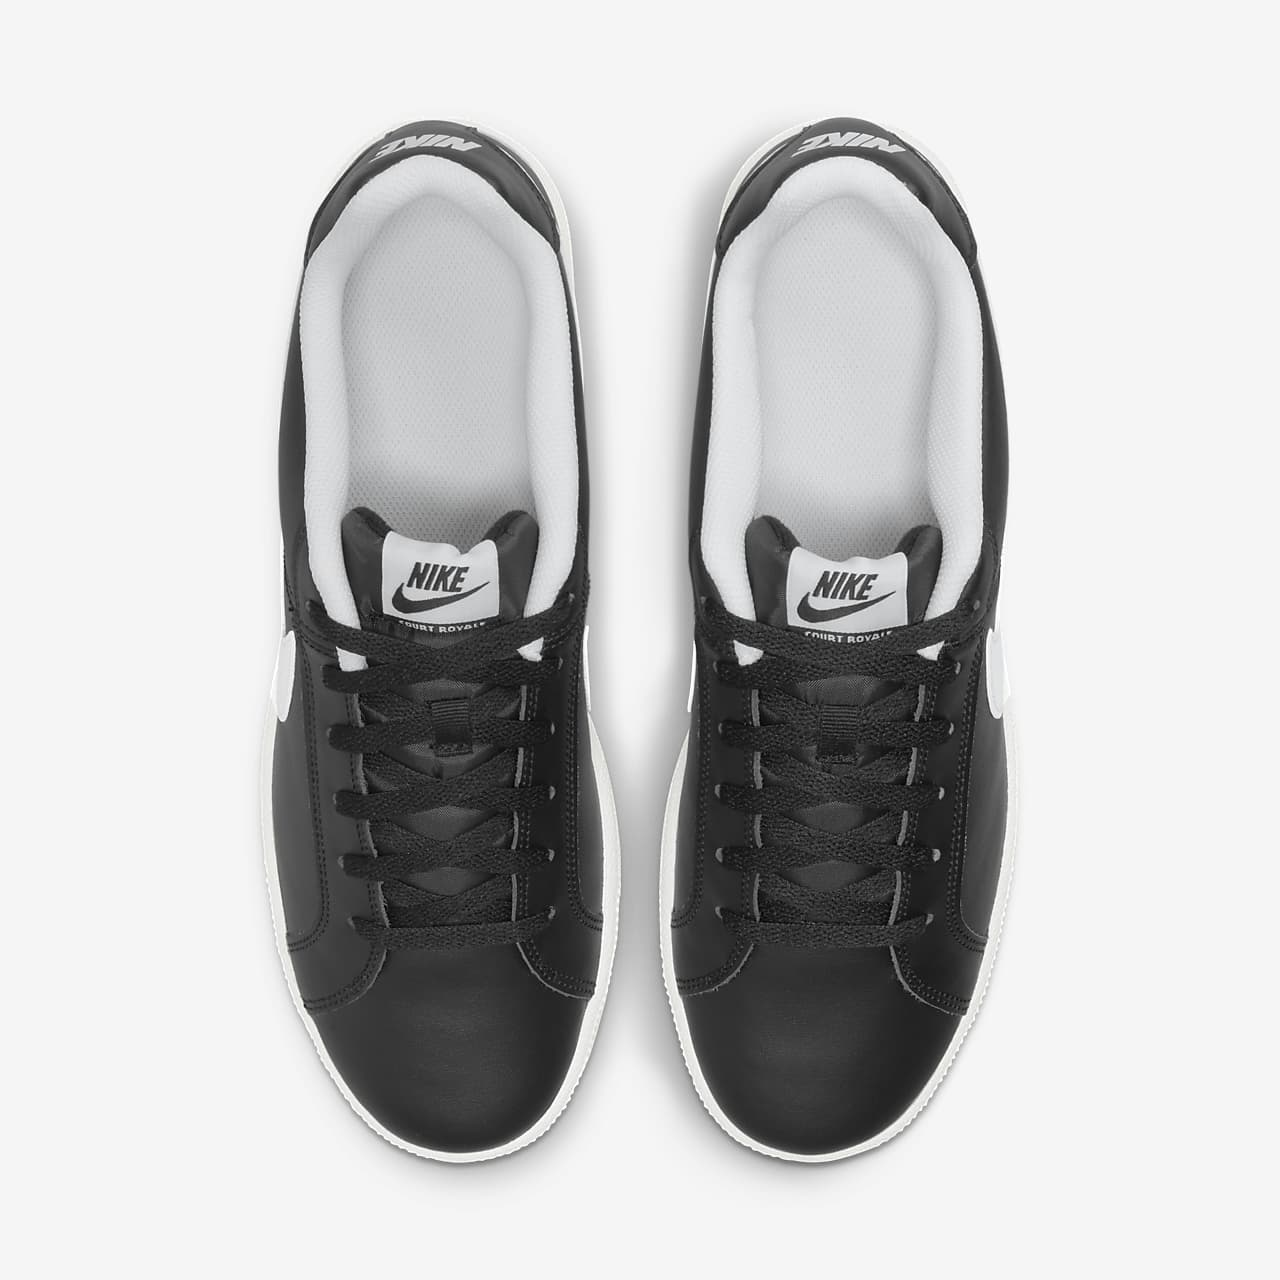 chaussures nike court royale femme